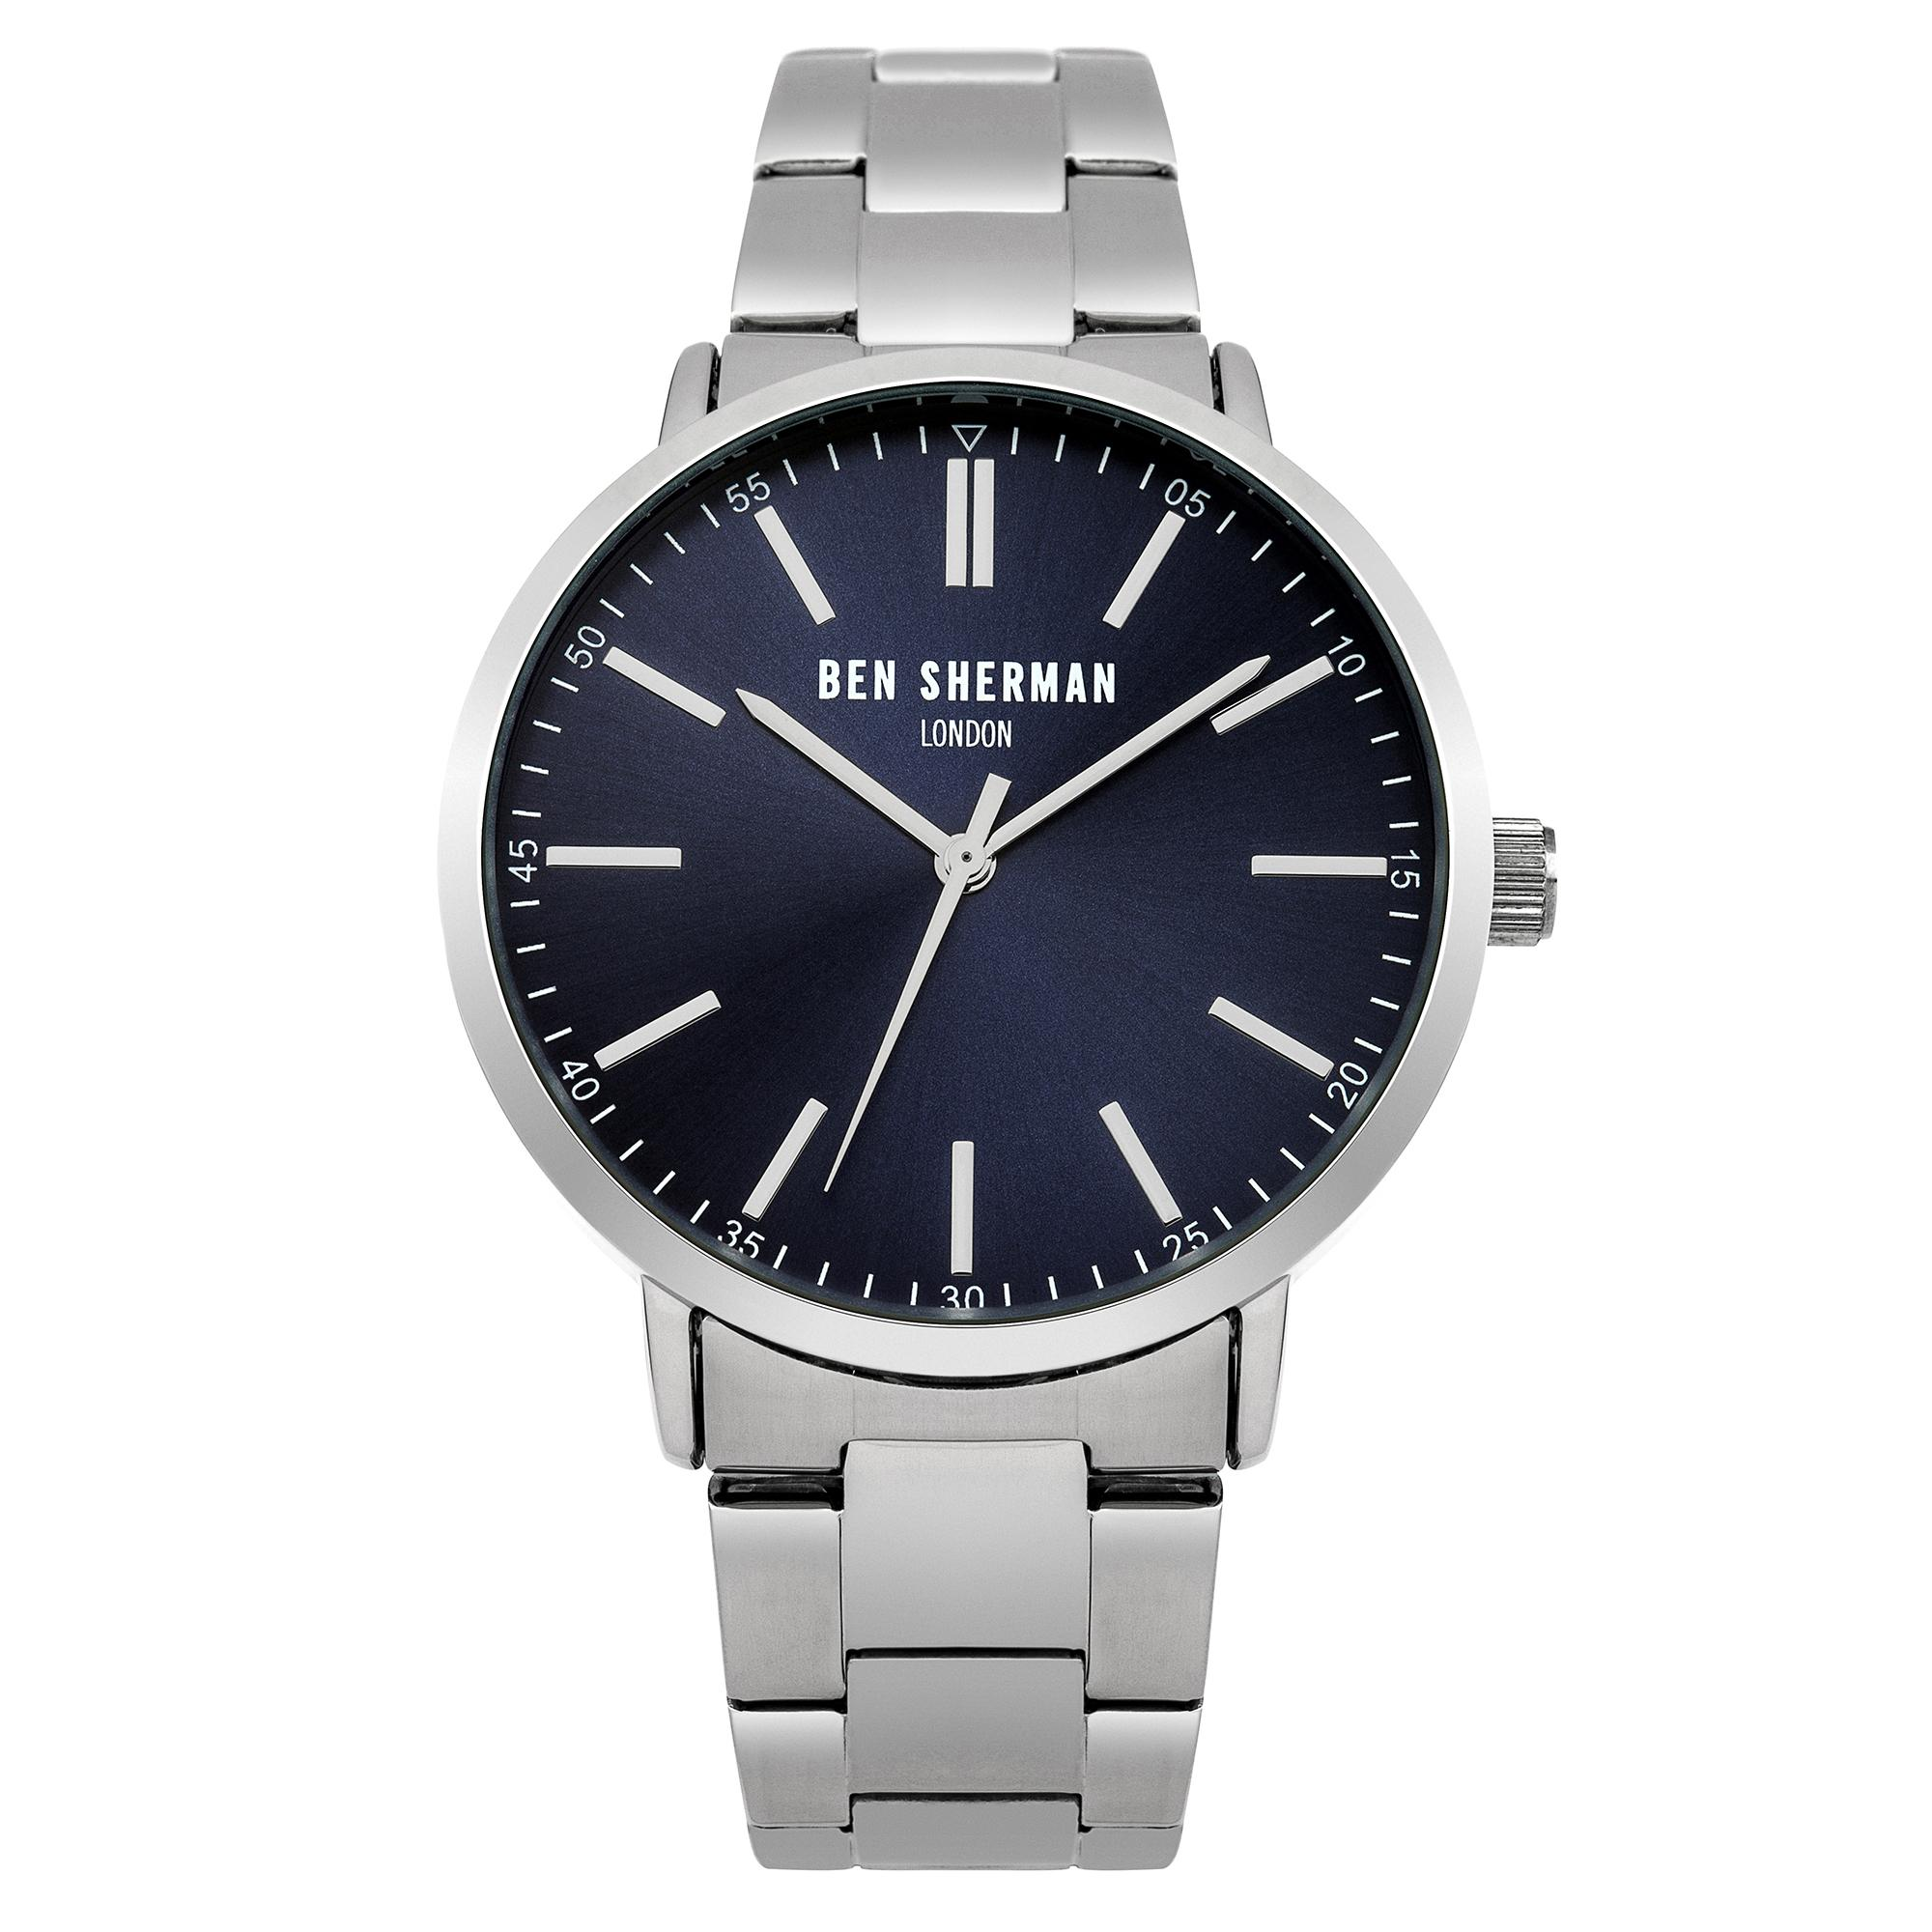 Ben Sherman watch - a stylish accessory for real men